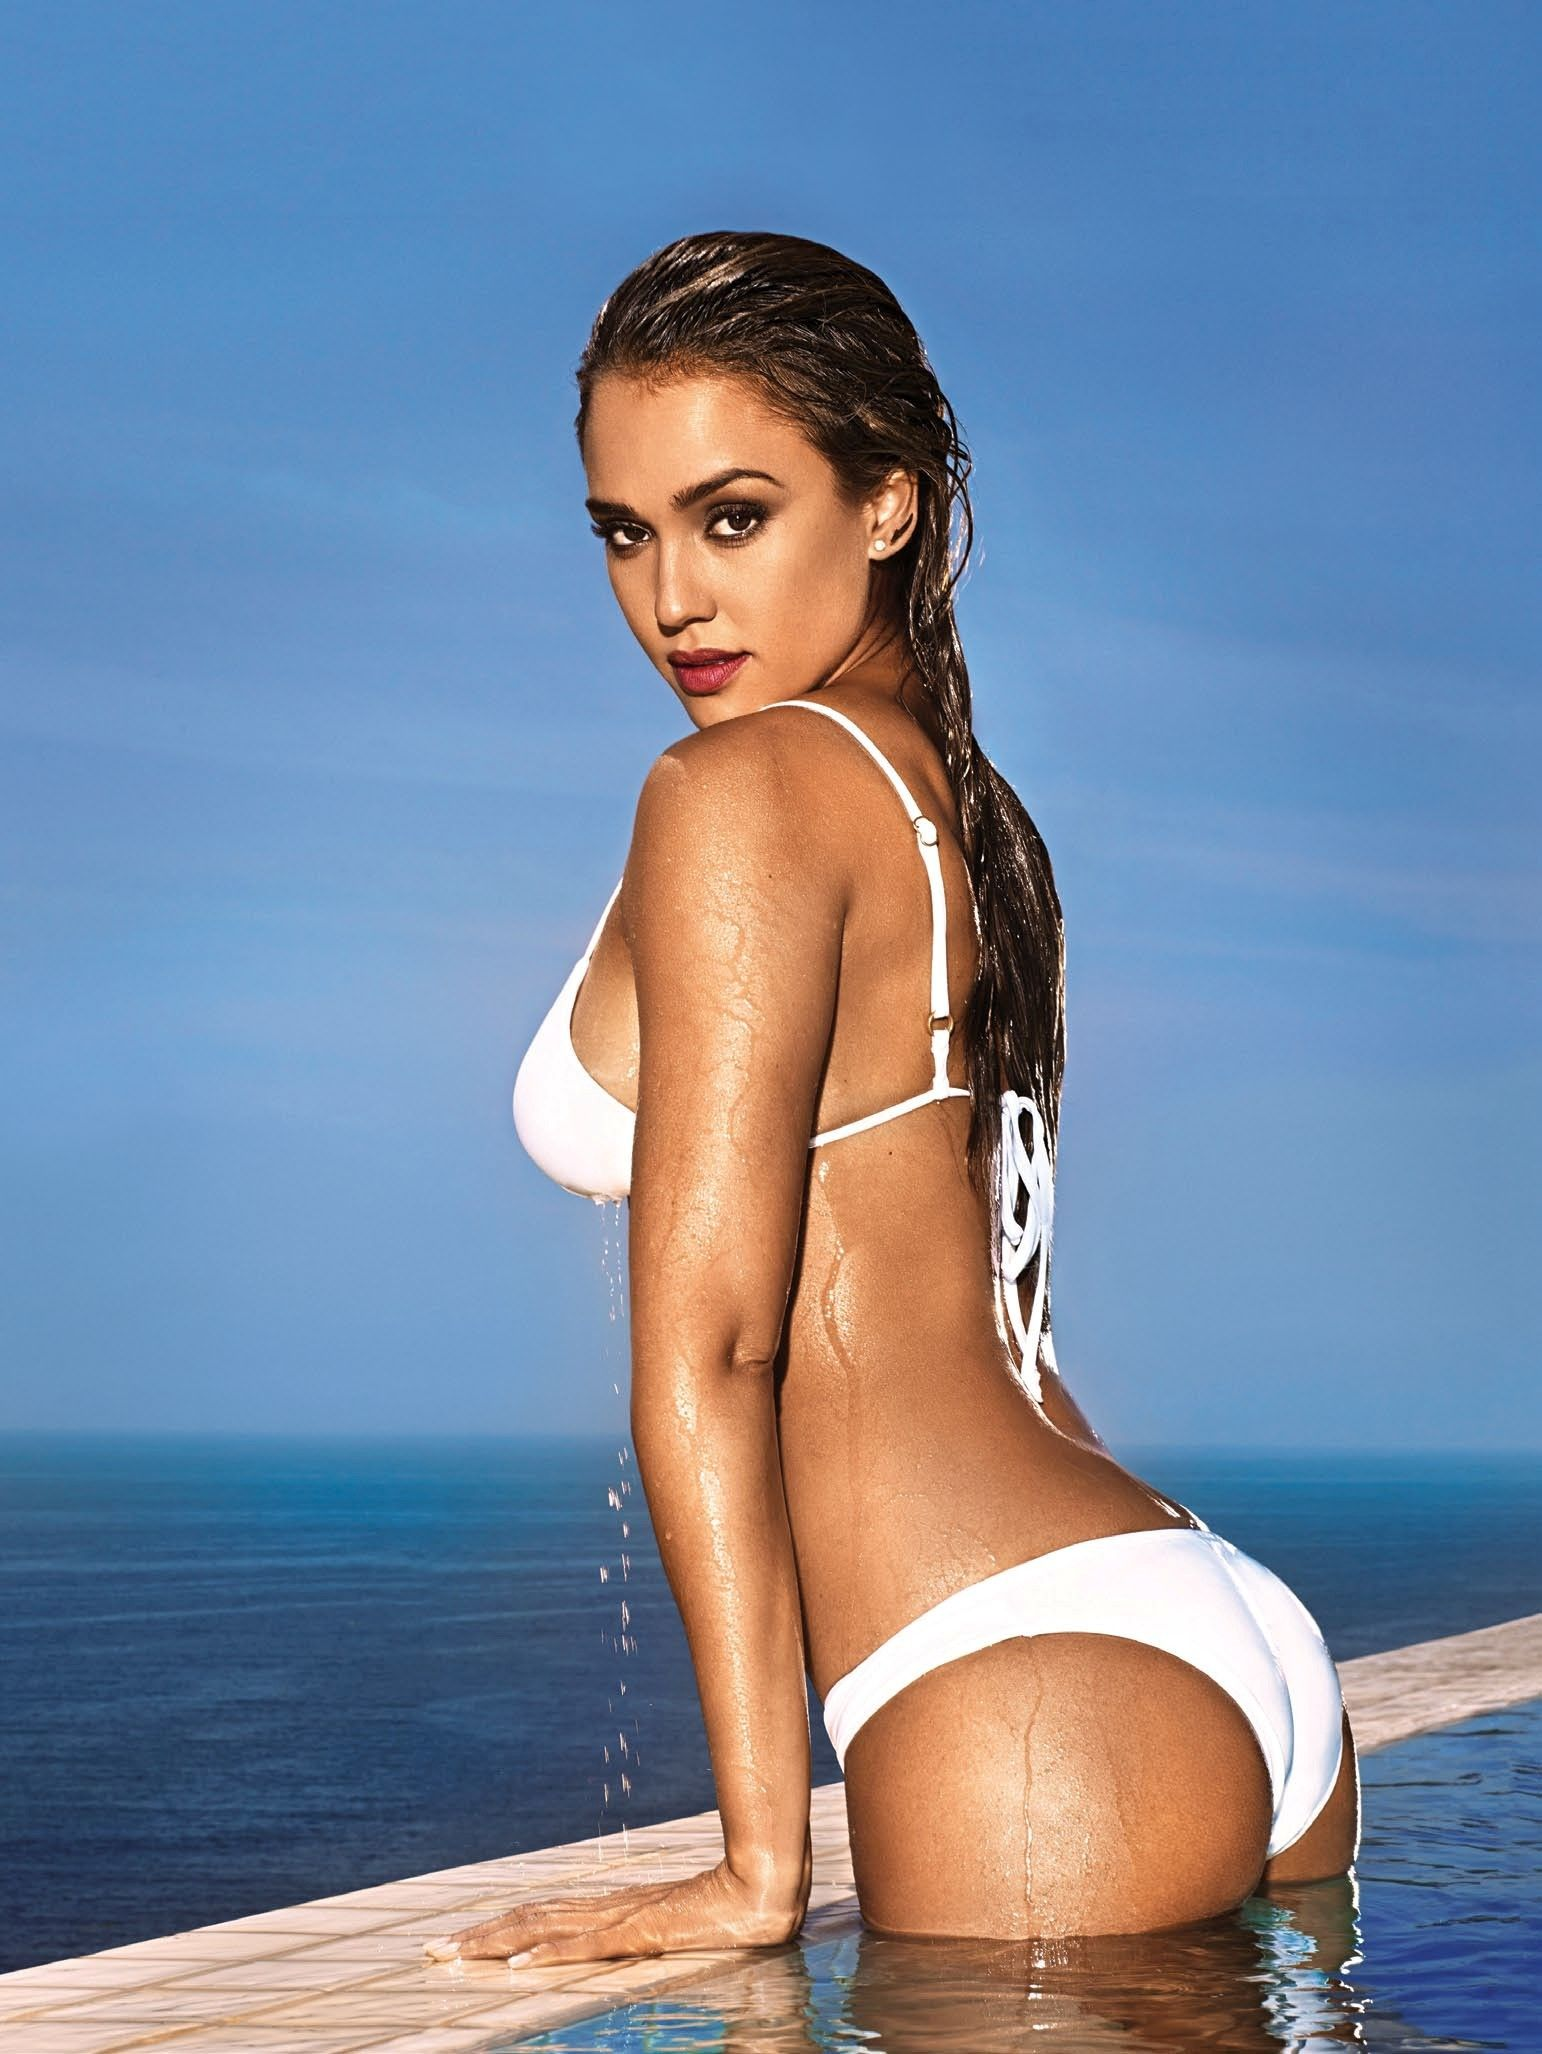 jessica-alba-entertainment-weekly-bikini-cover.jpg